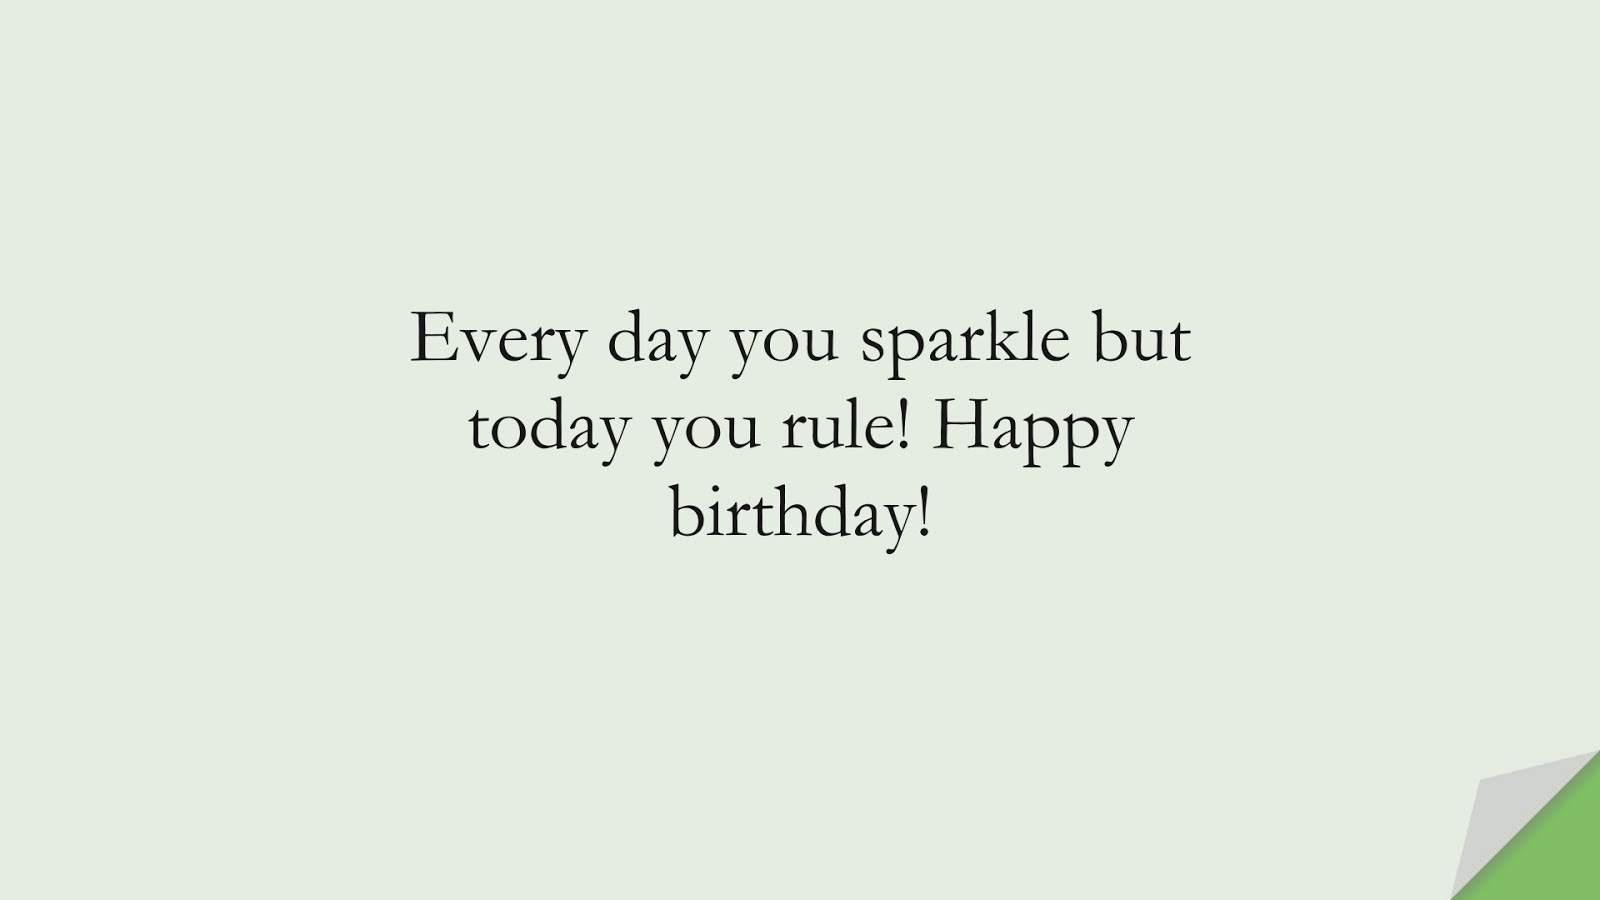 Every day you sparkle but today you rule! Happy birthday!FALSE